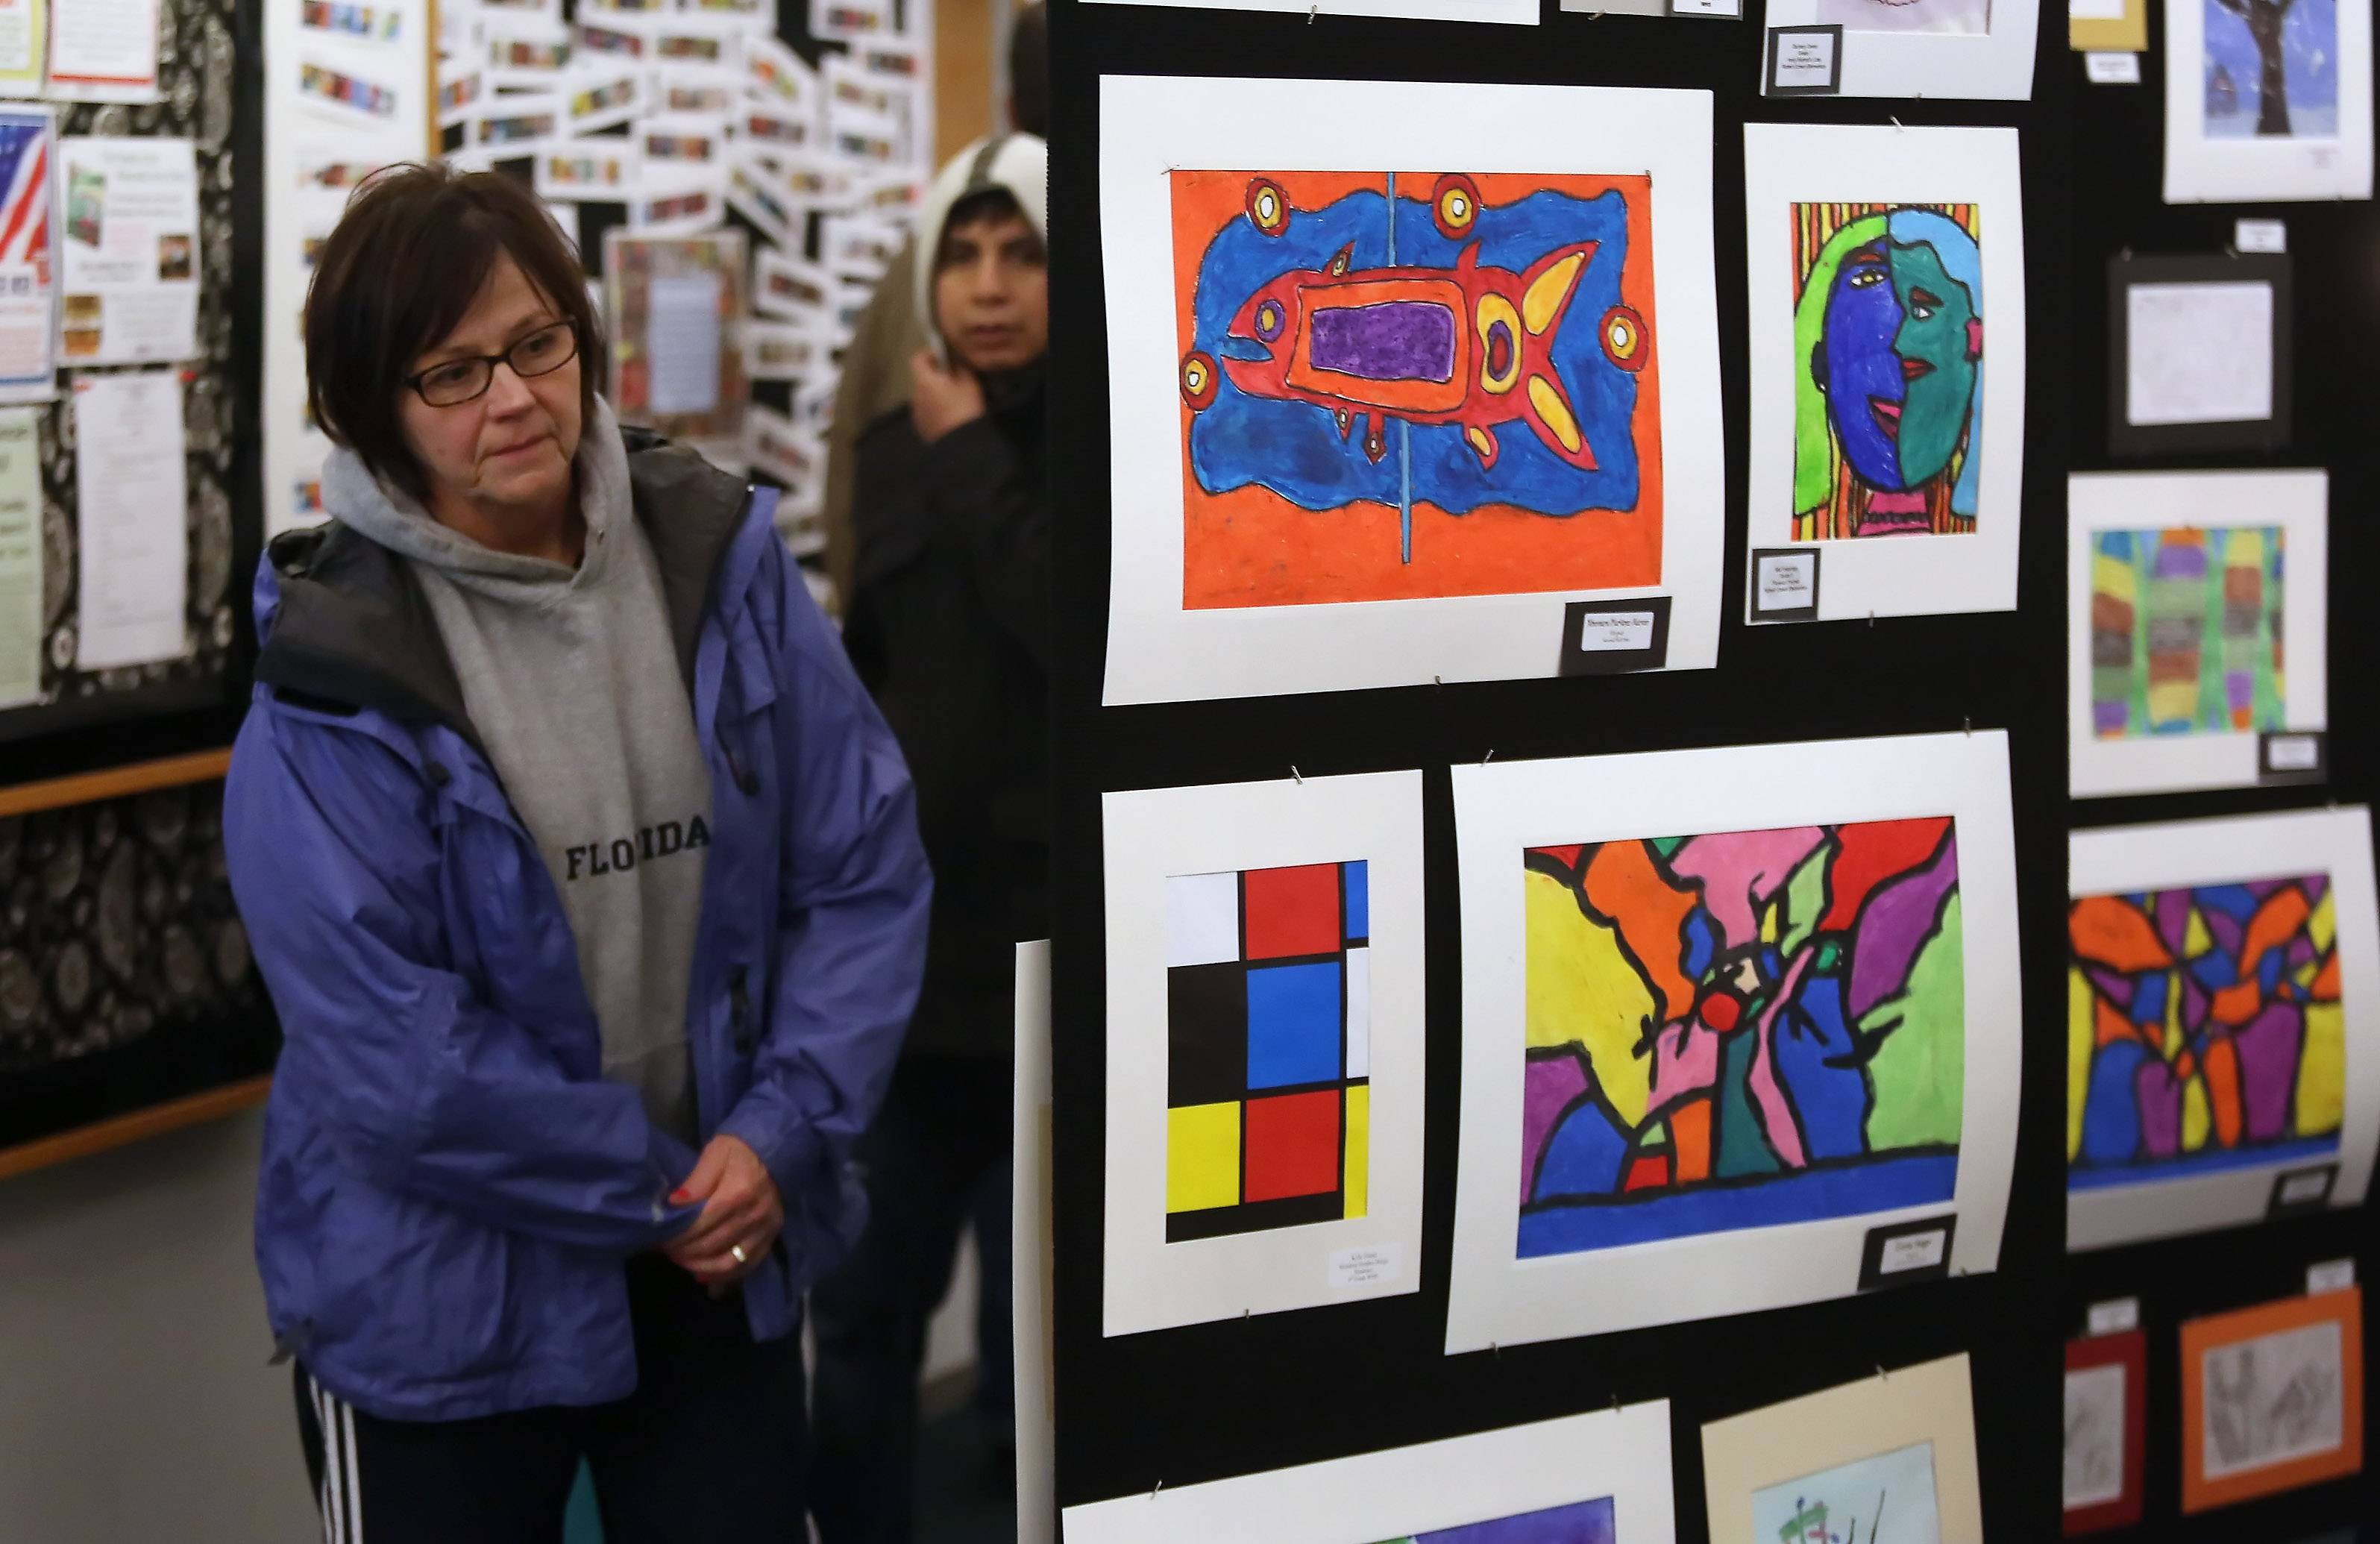 Grandmother Cheryl Thiel looks for fourth-grader Belle Johnson's artwork during the Studio 118 open house Thursday at Wauconda Area Library. The show featured more than 600 pieces of art by District 118 students.